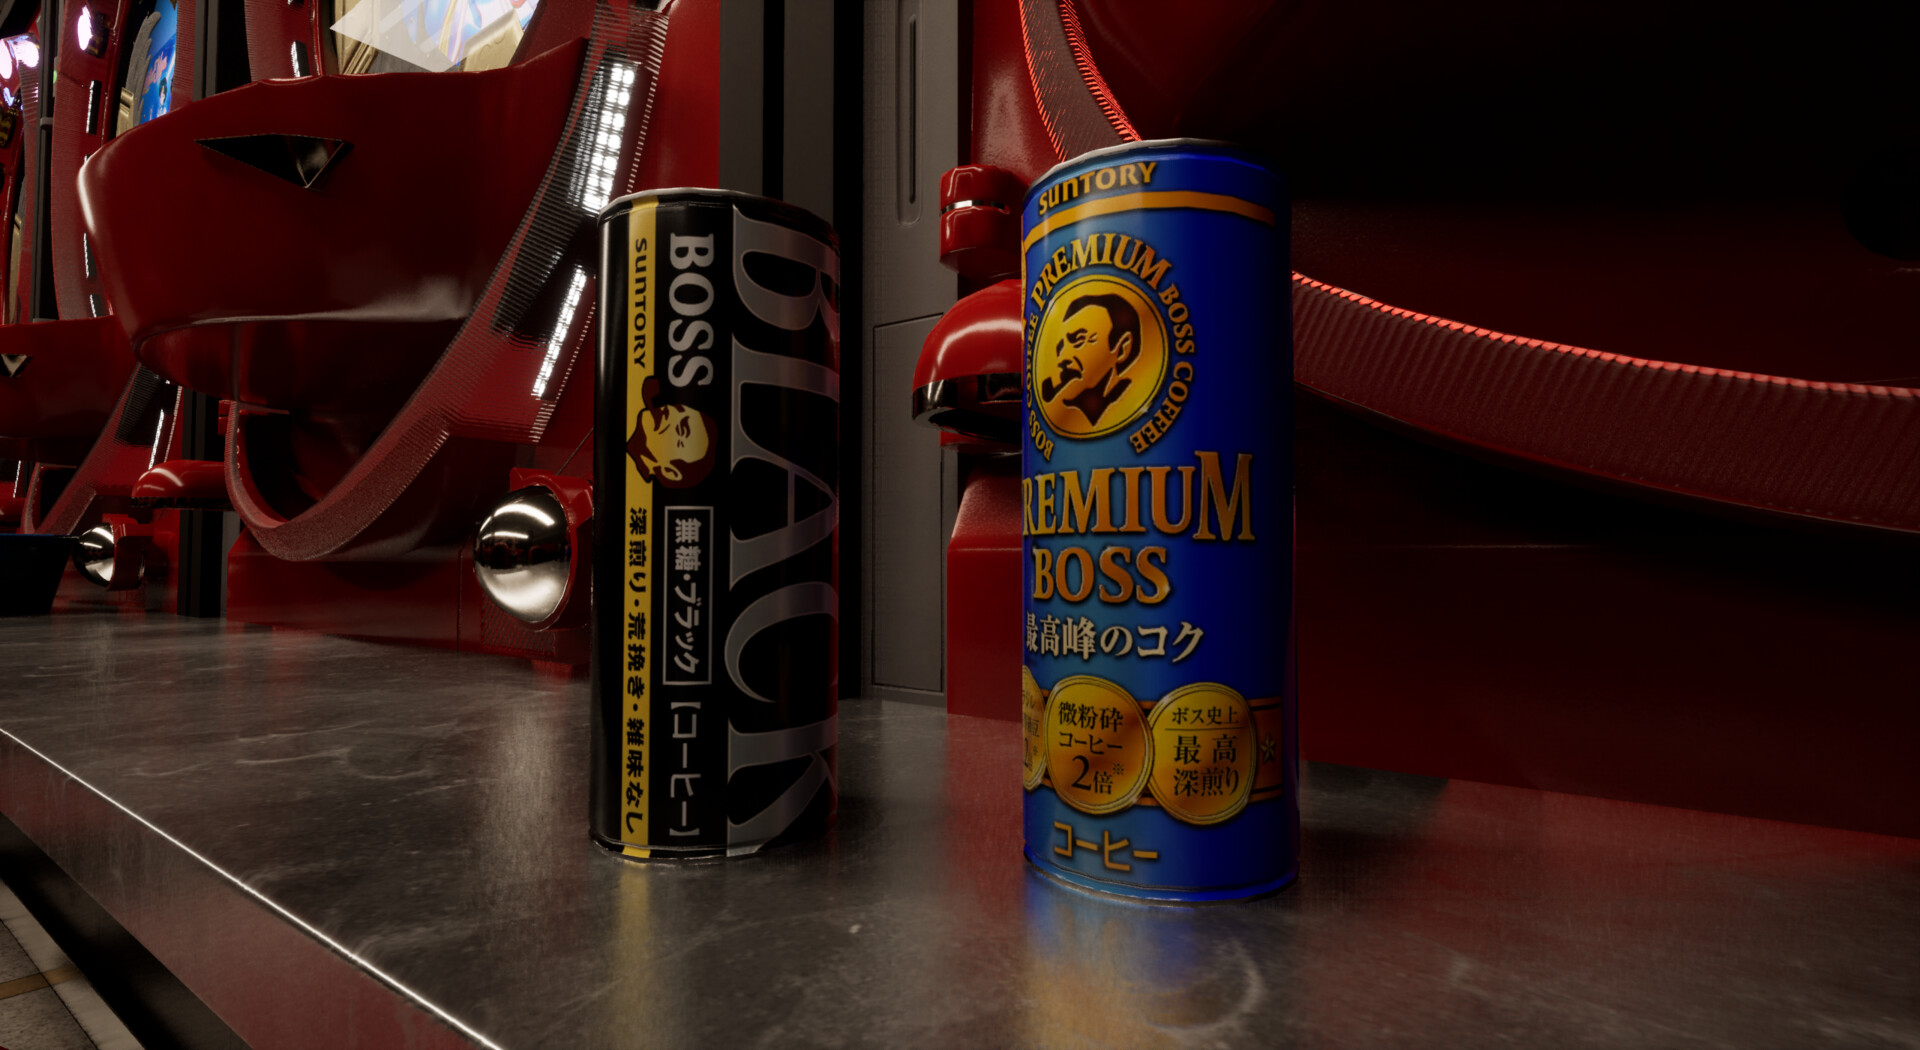 Coffee based off of Boss canned coffee